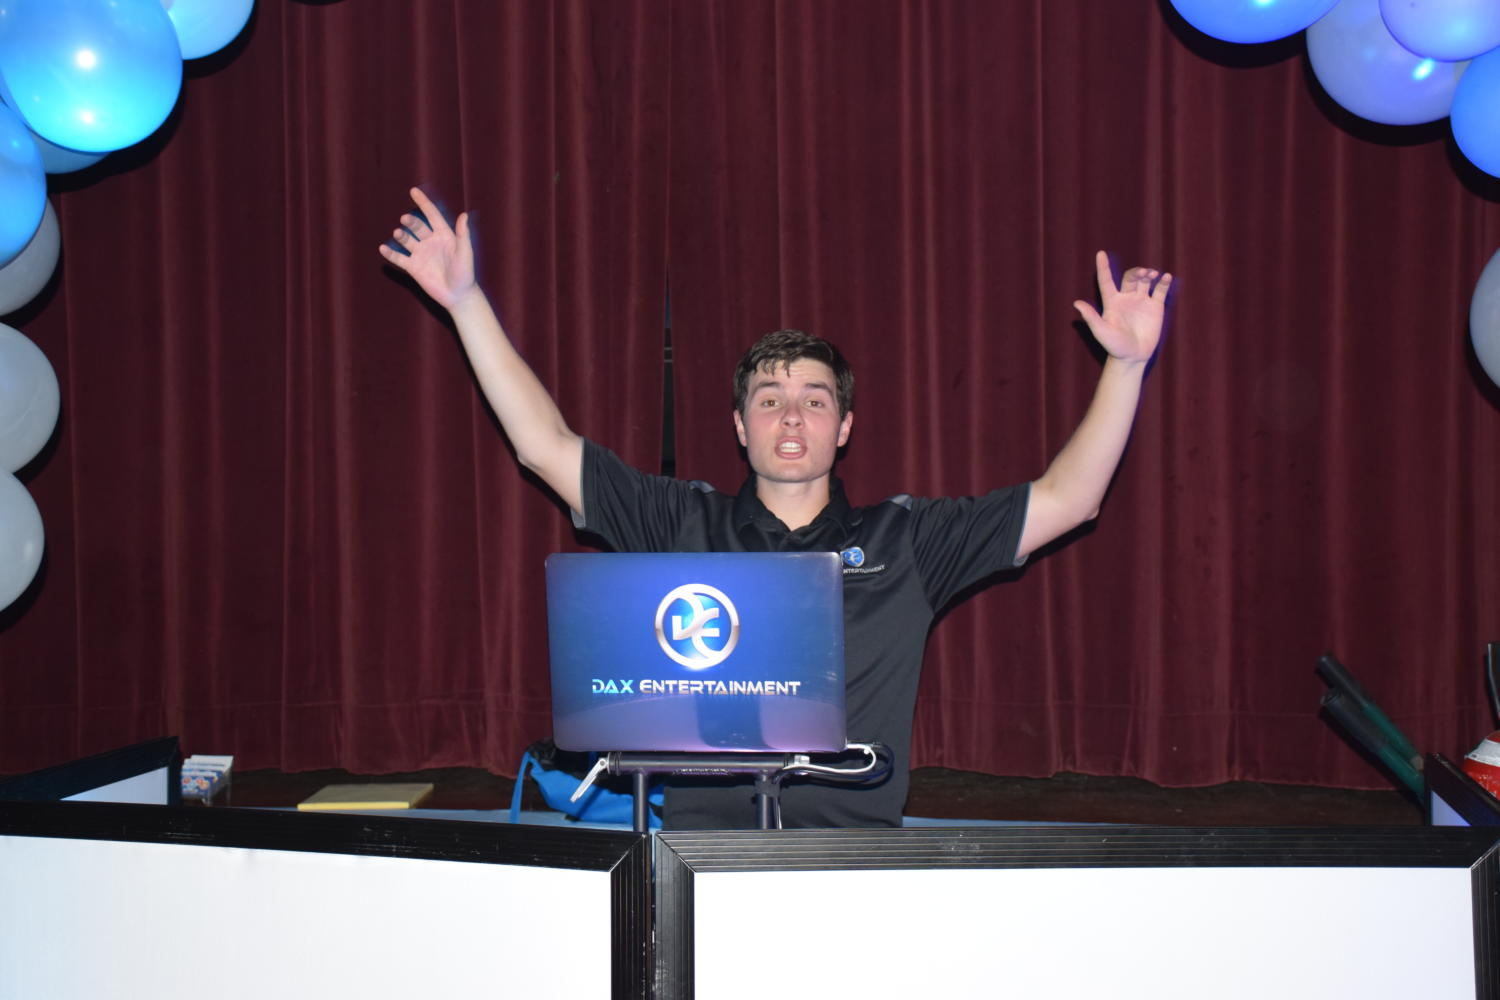 DJ Dustin having a blast behind the turntables as he prepares for a show.